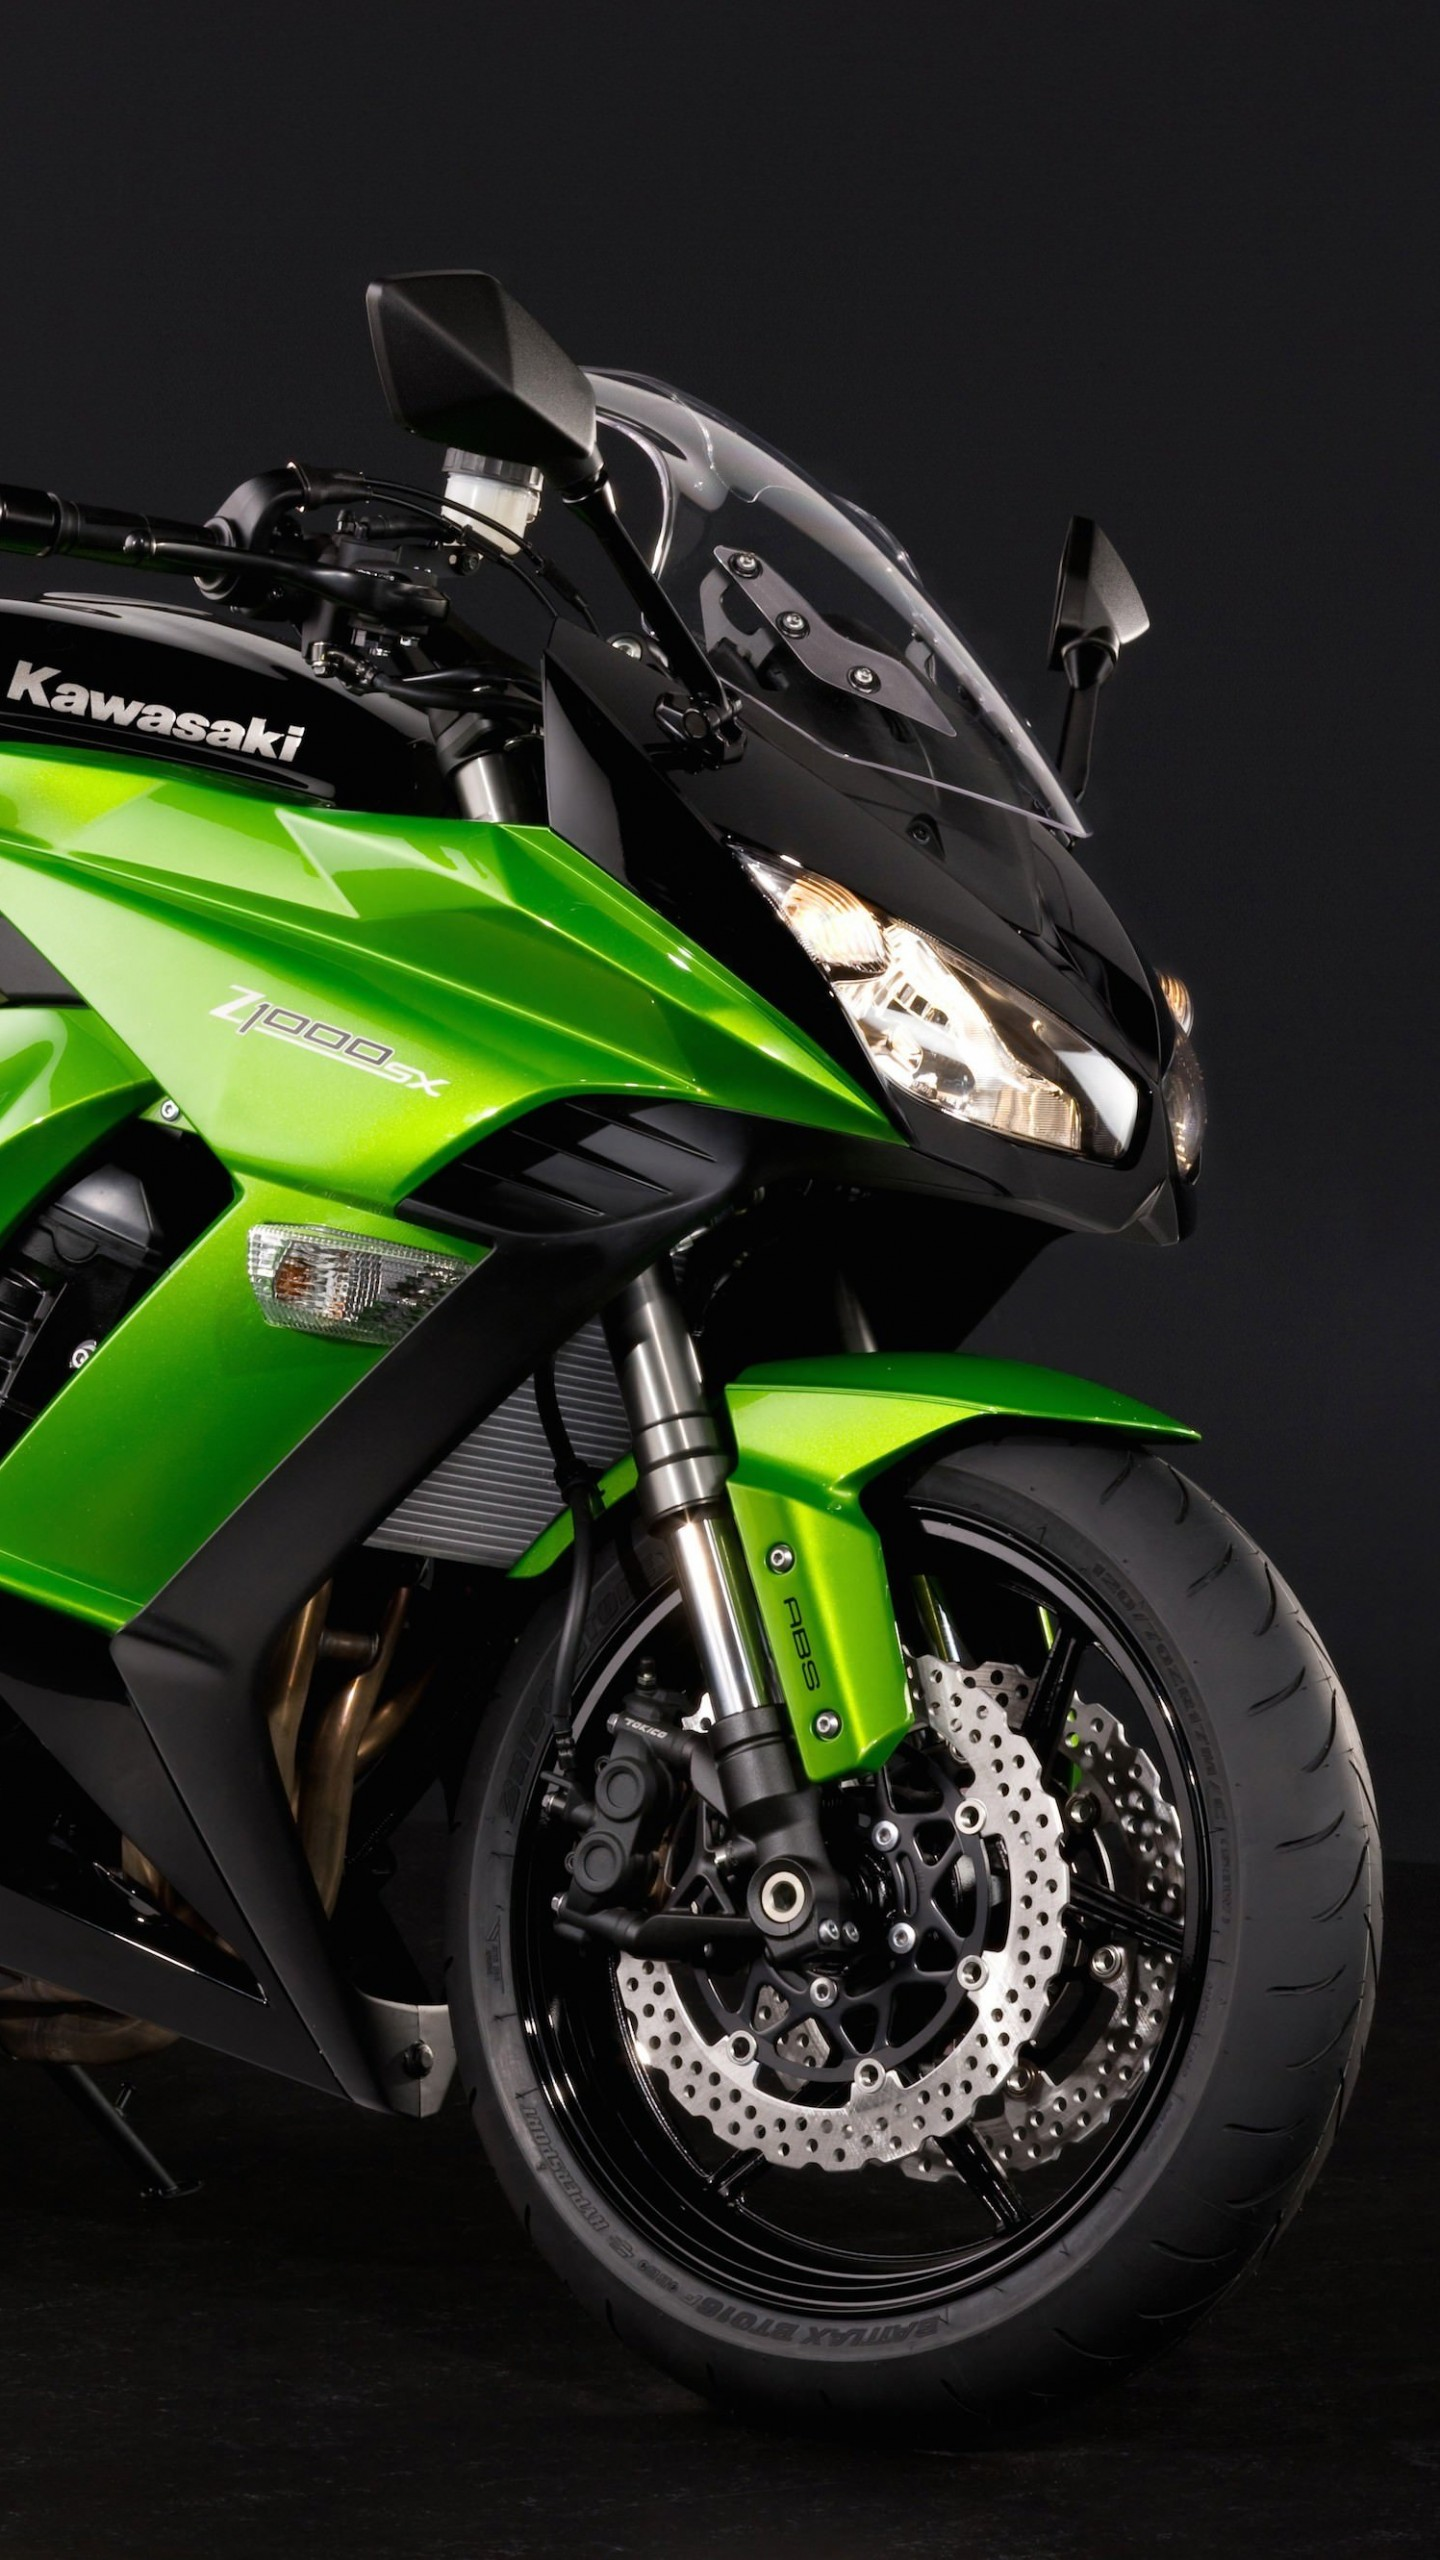 Kawasaki Kawasaki Z1000SX Wallpaper for Google Nexus 6P